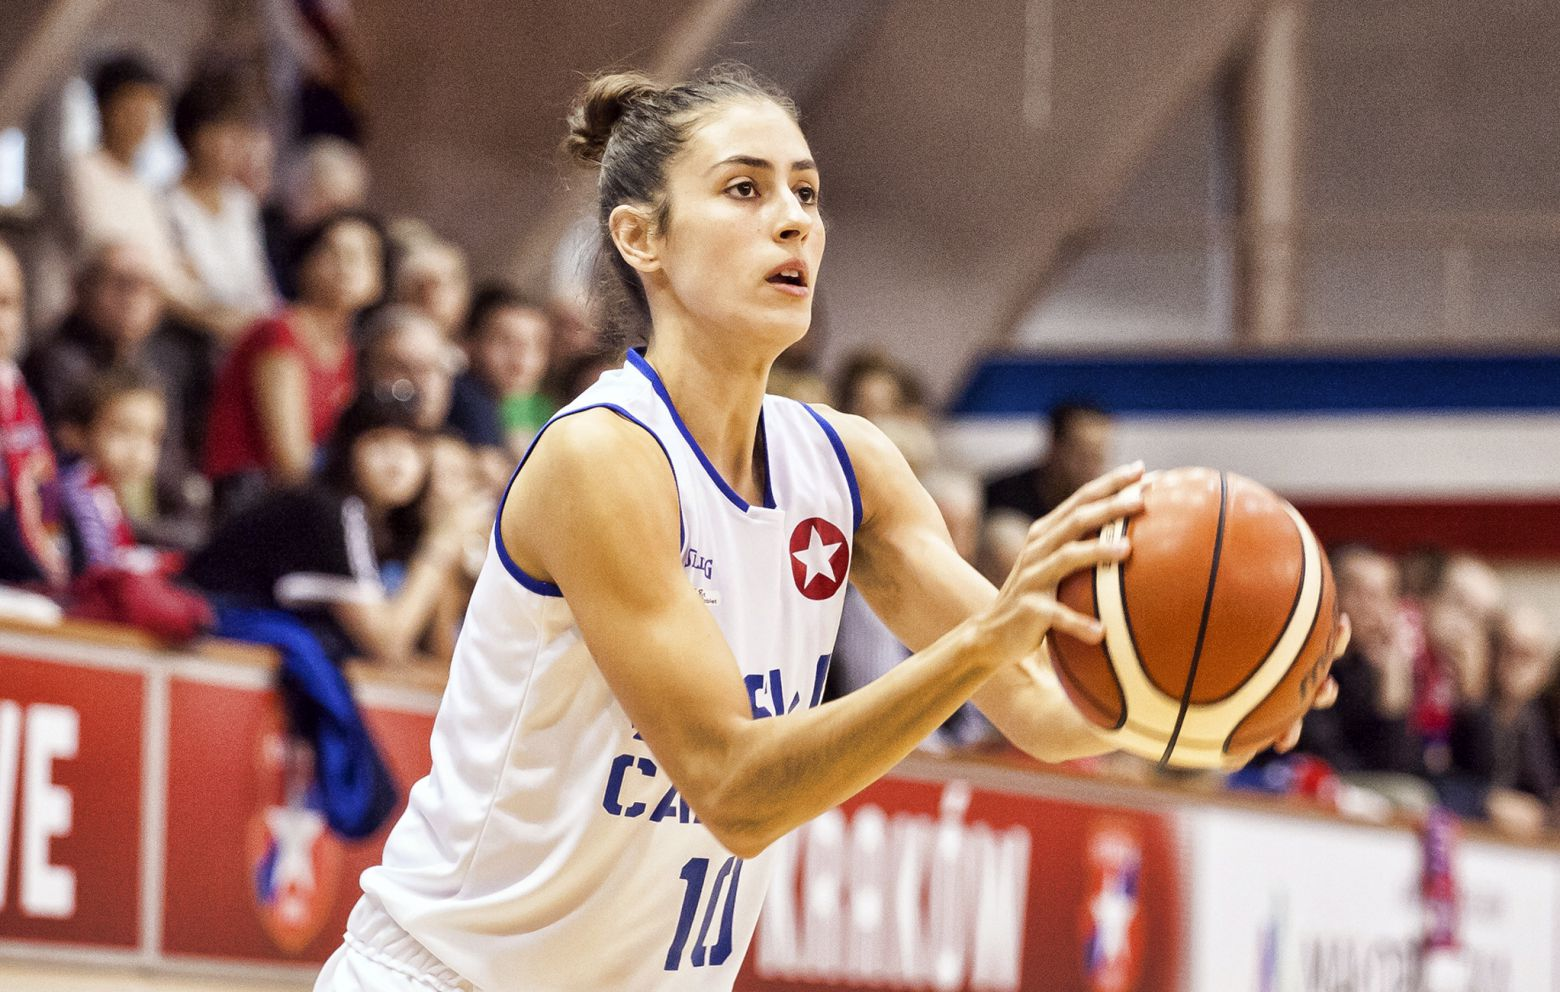 MARÍA CONDE has signed with CCC Polkowice